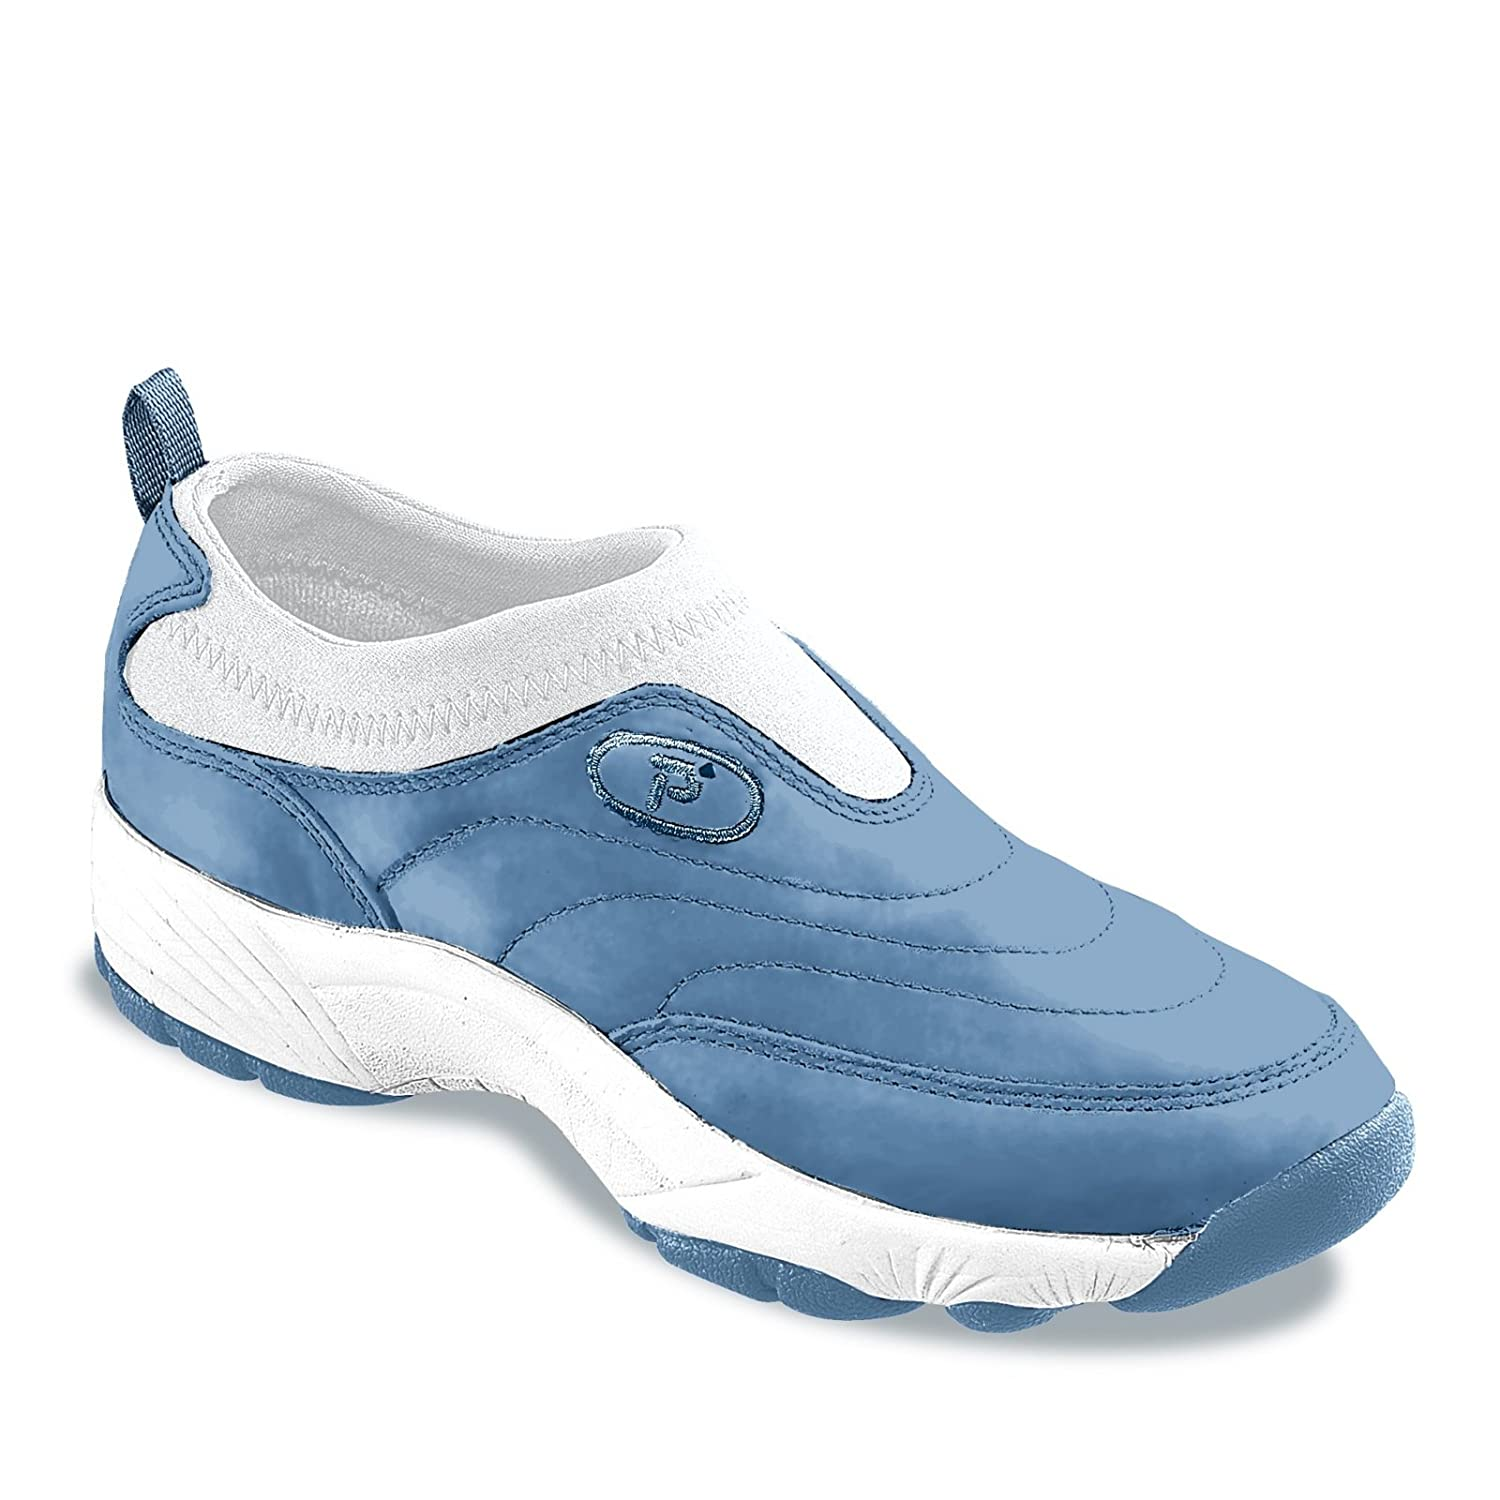 Propet Women's Wash N Wear Slip on Ll Walking Shoe B000KPLUWW 9.5 B(M) US|Royal Blue/White